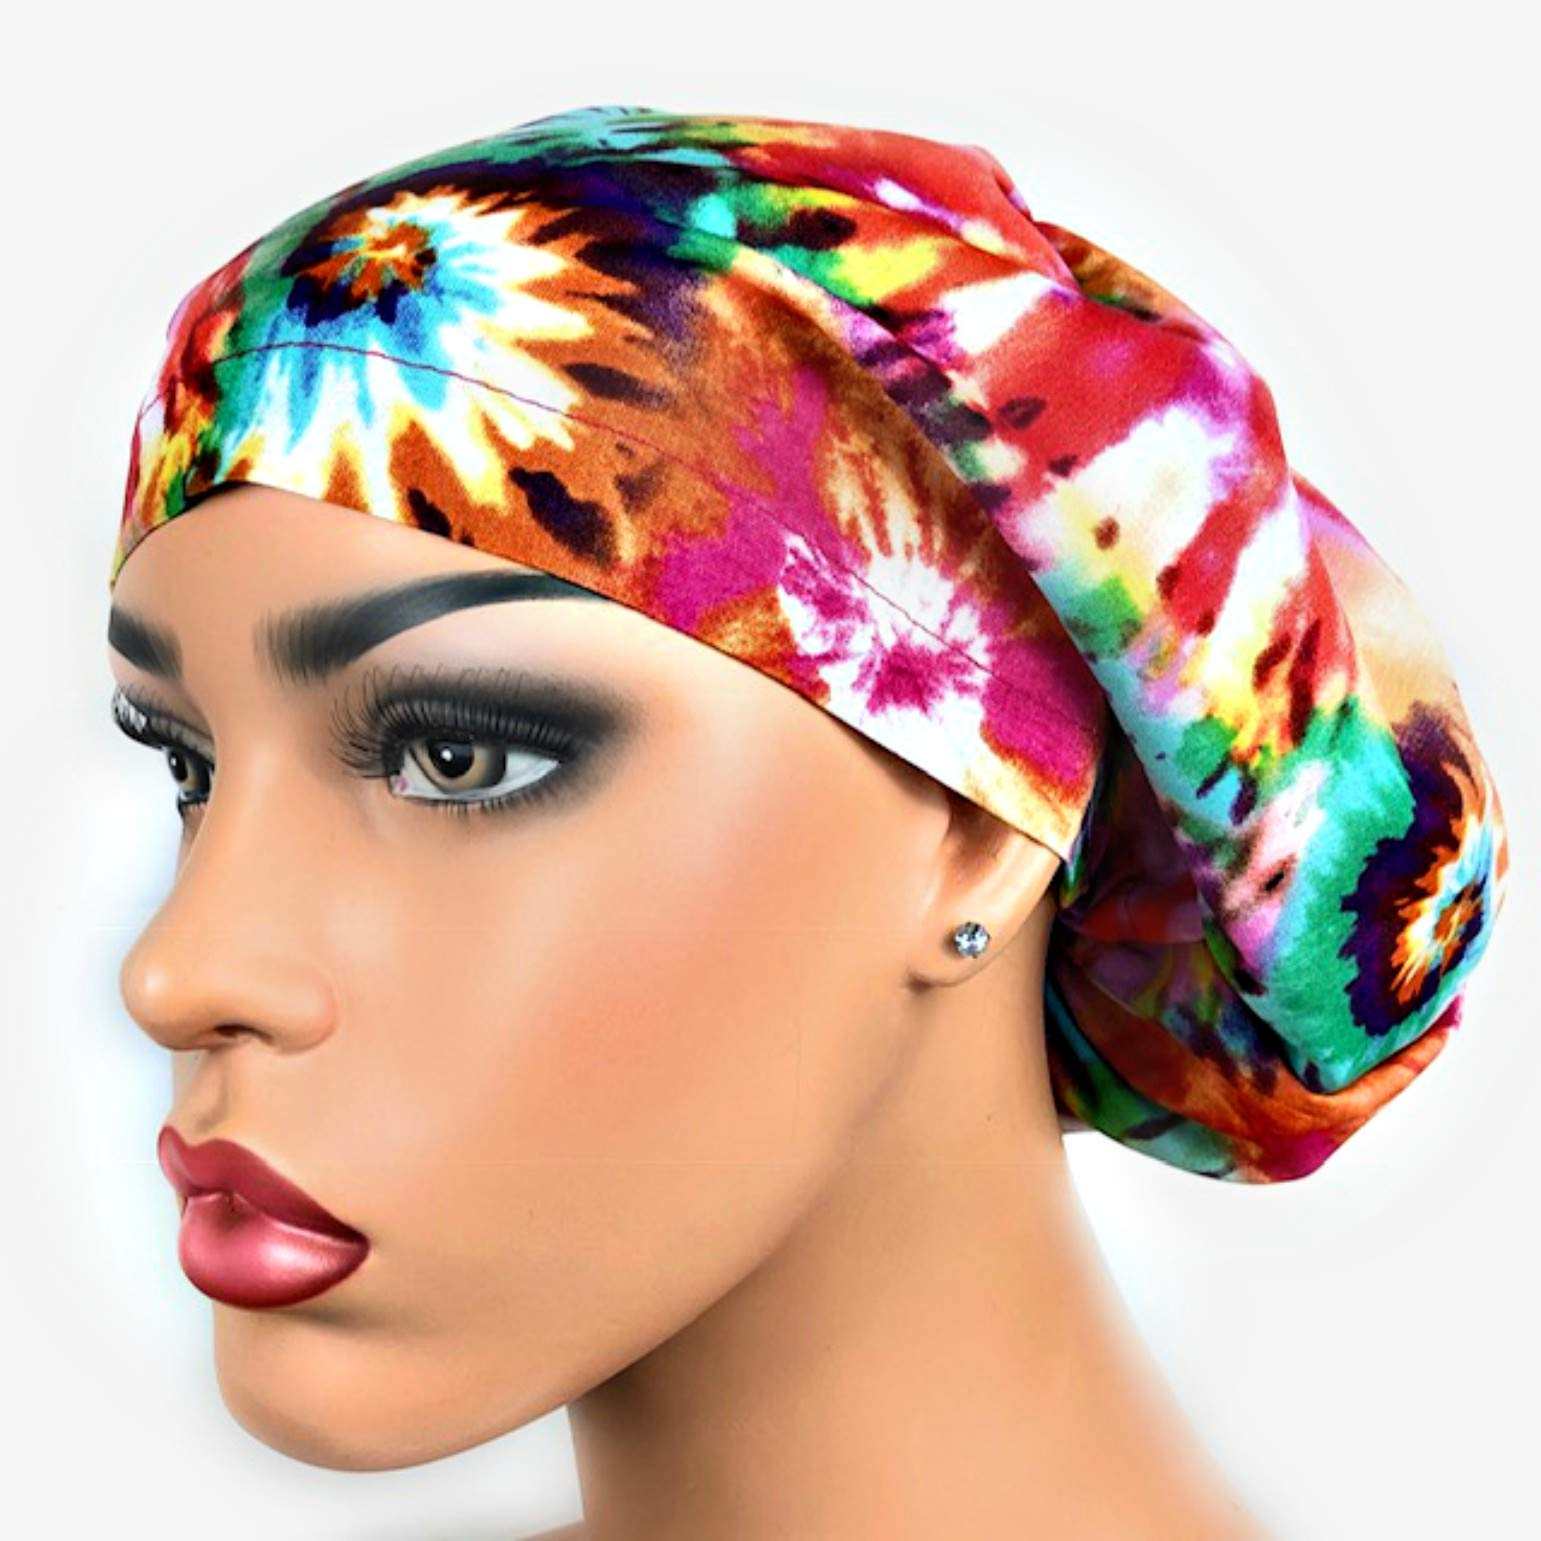 Womens Surgical Scrub Hat OR Nurse Cap Euro Style Pink Multicolored Tie Dye by DK Scrub Hats